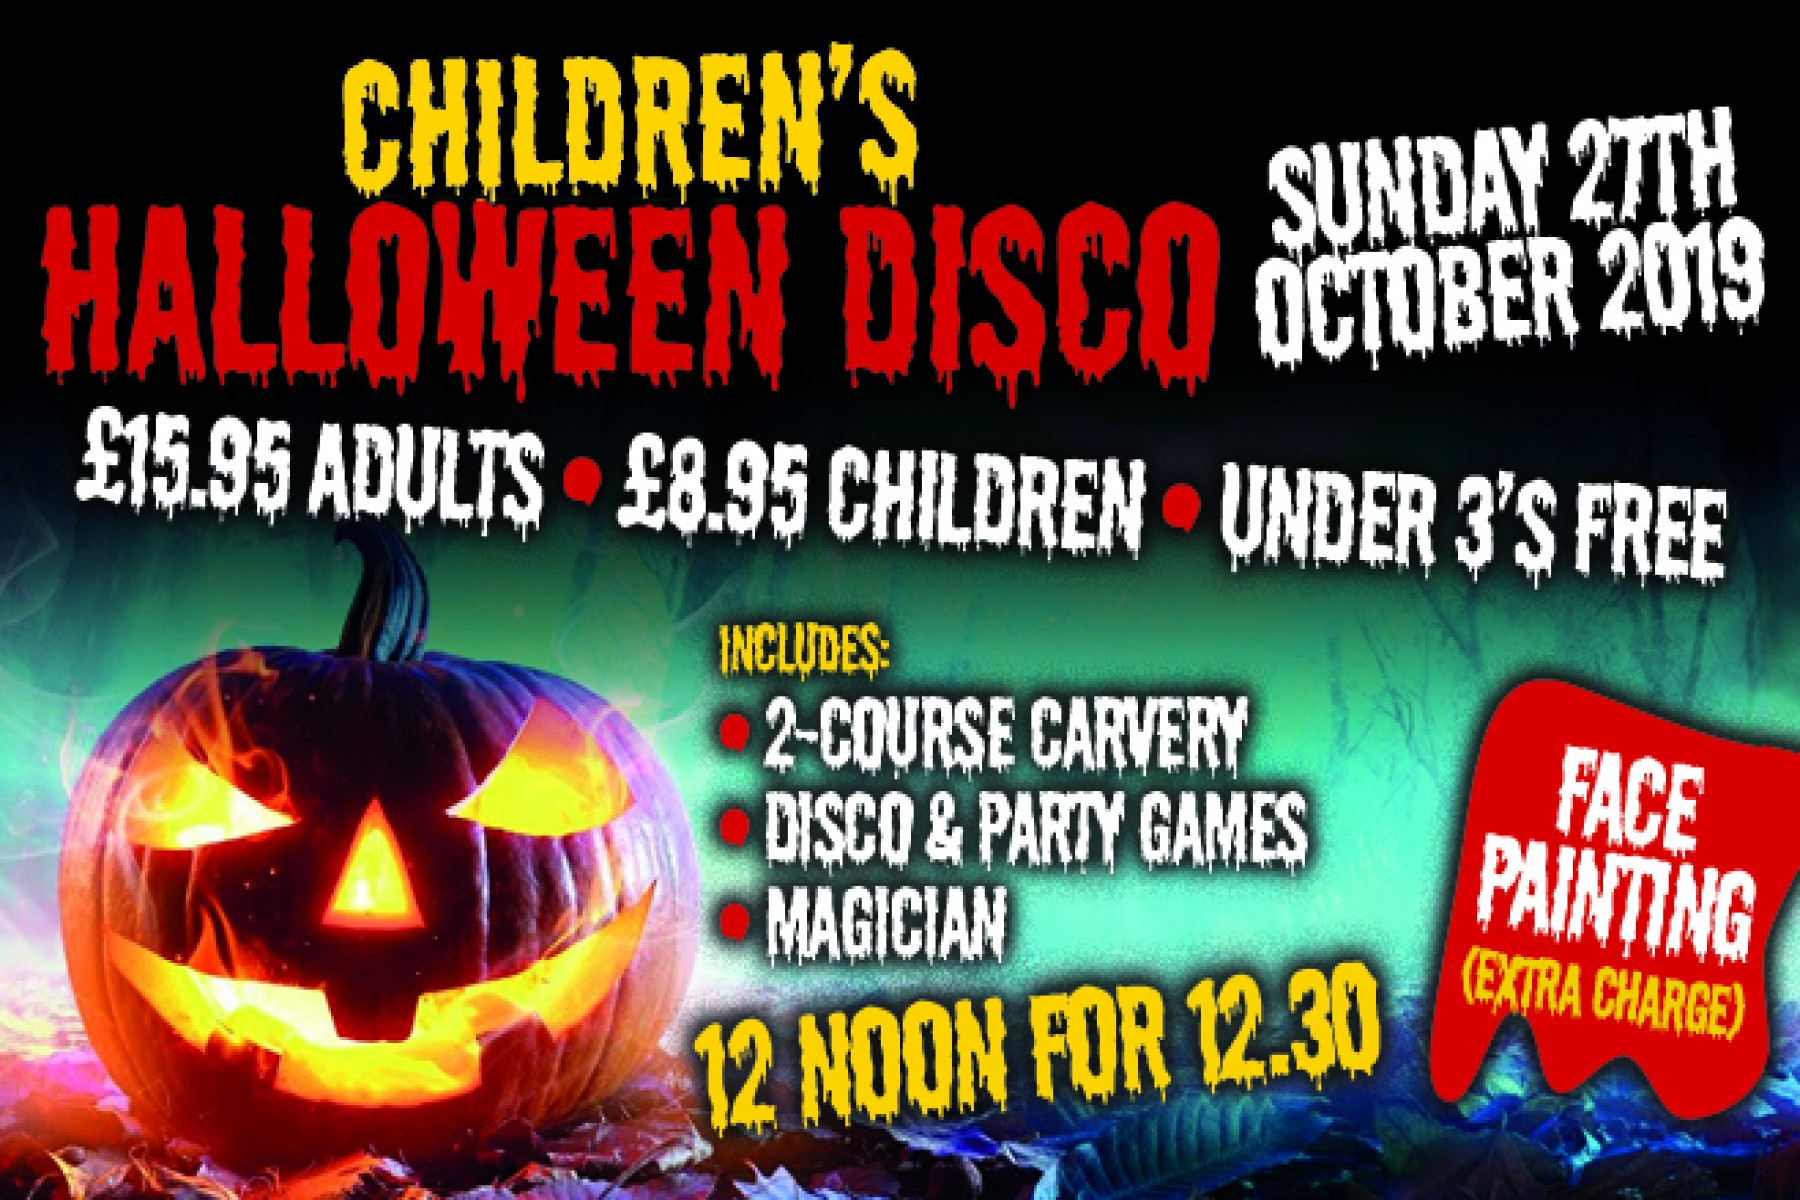 Children's Halloween Disco (27th October 2019)